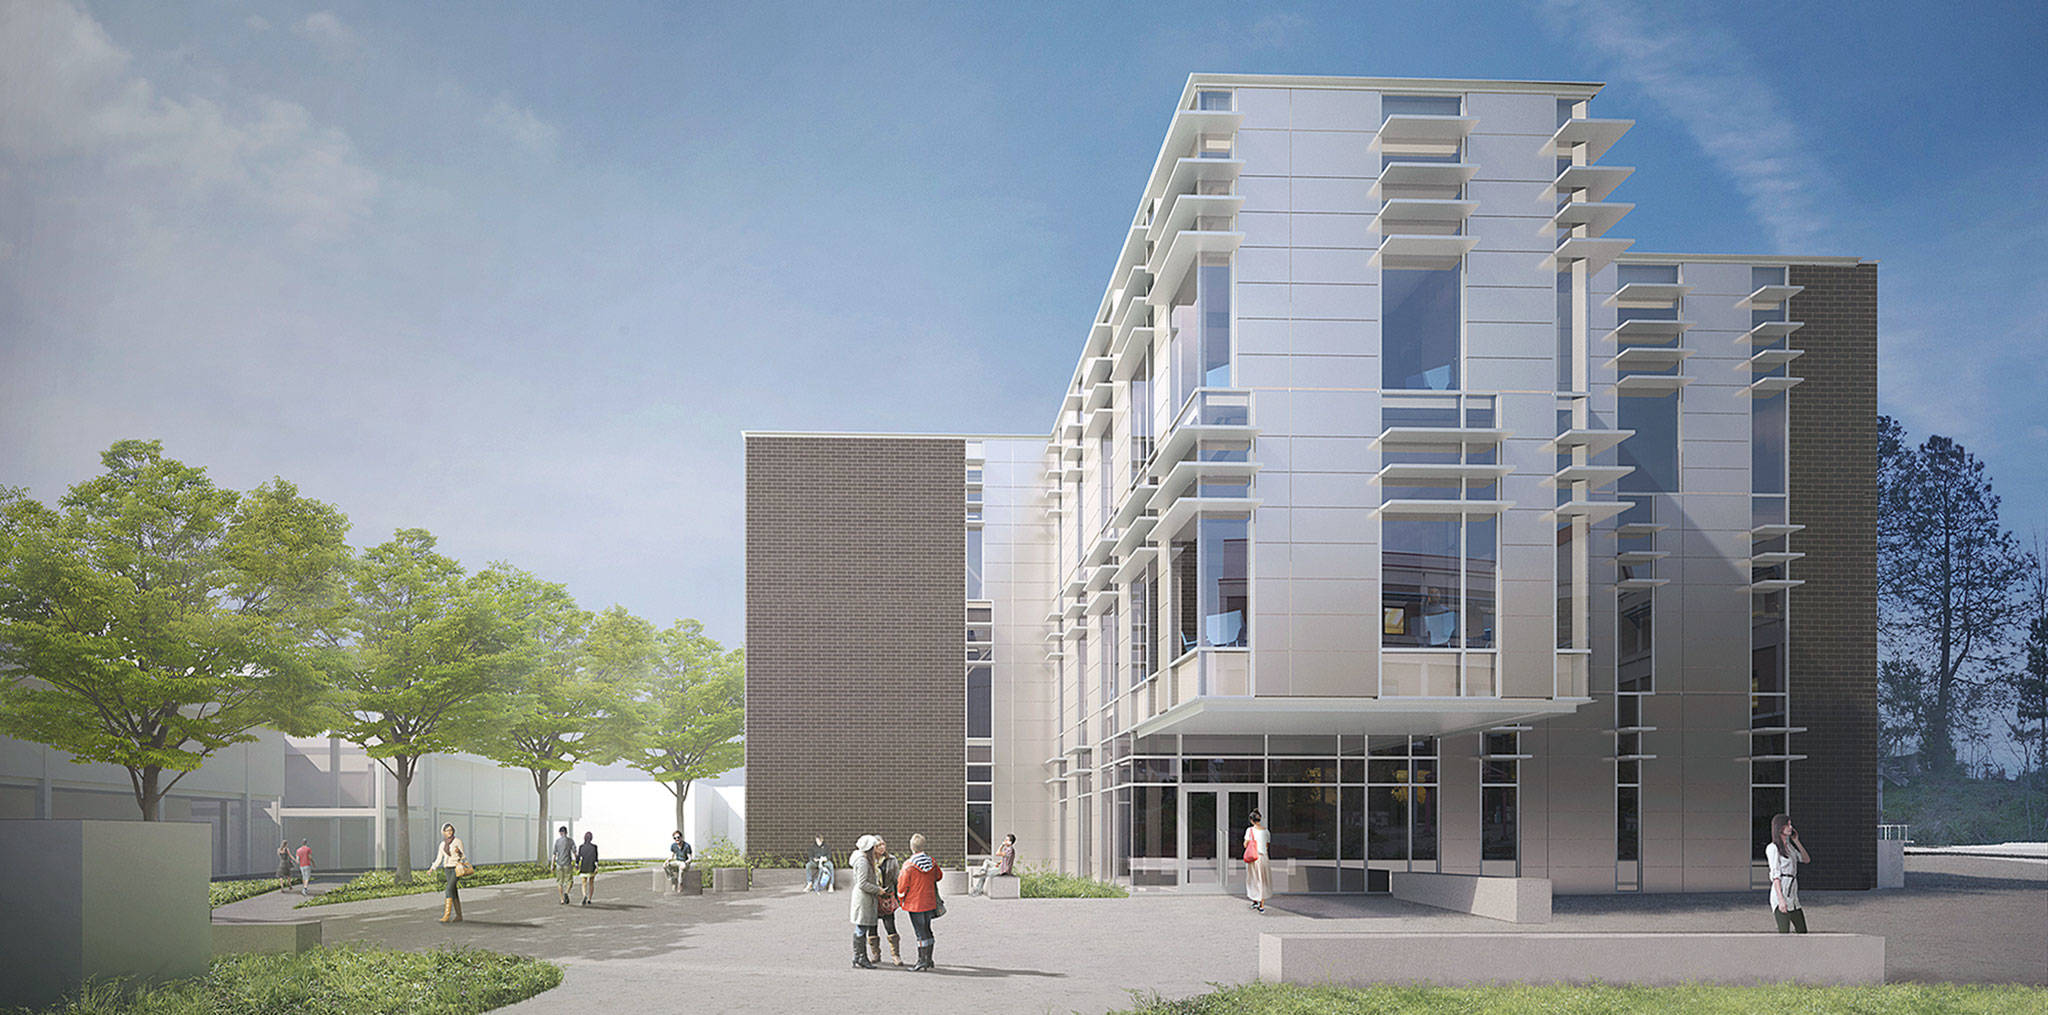 Construction could start on new EdCC building this year | HeraldNet.com